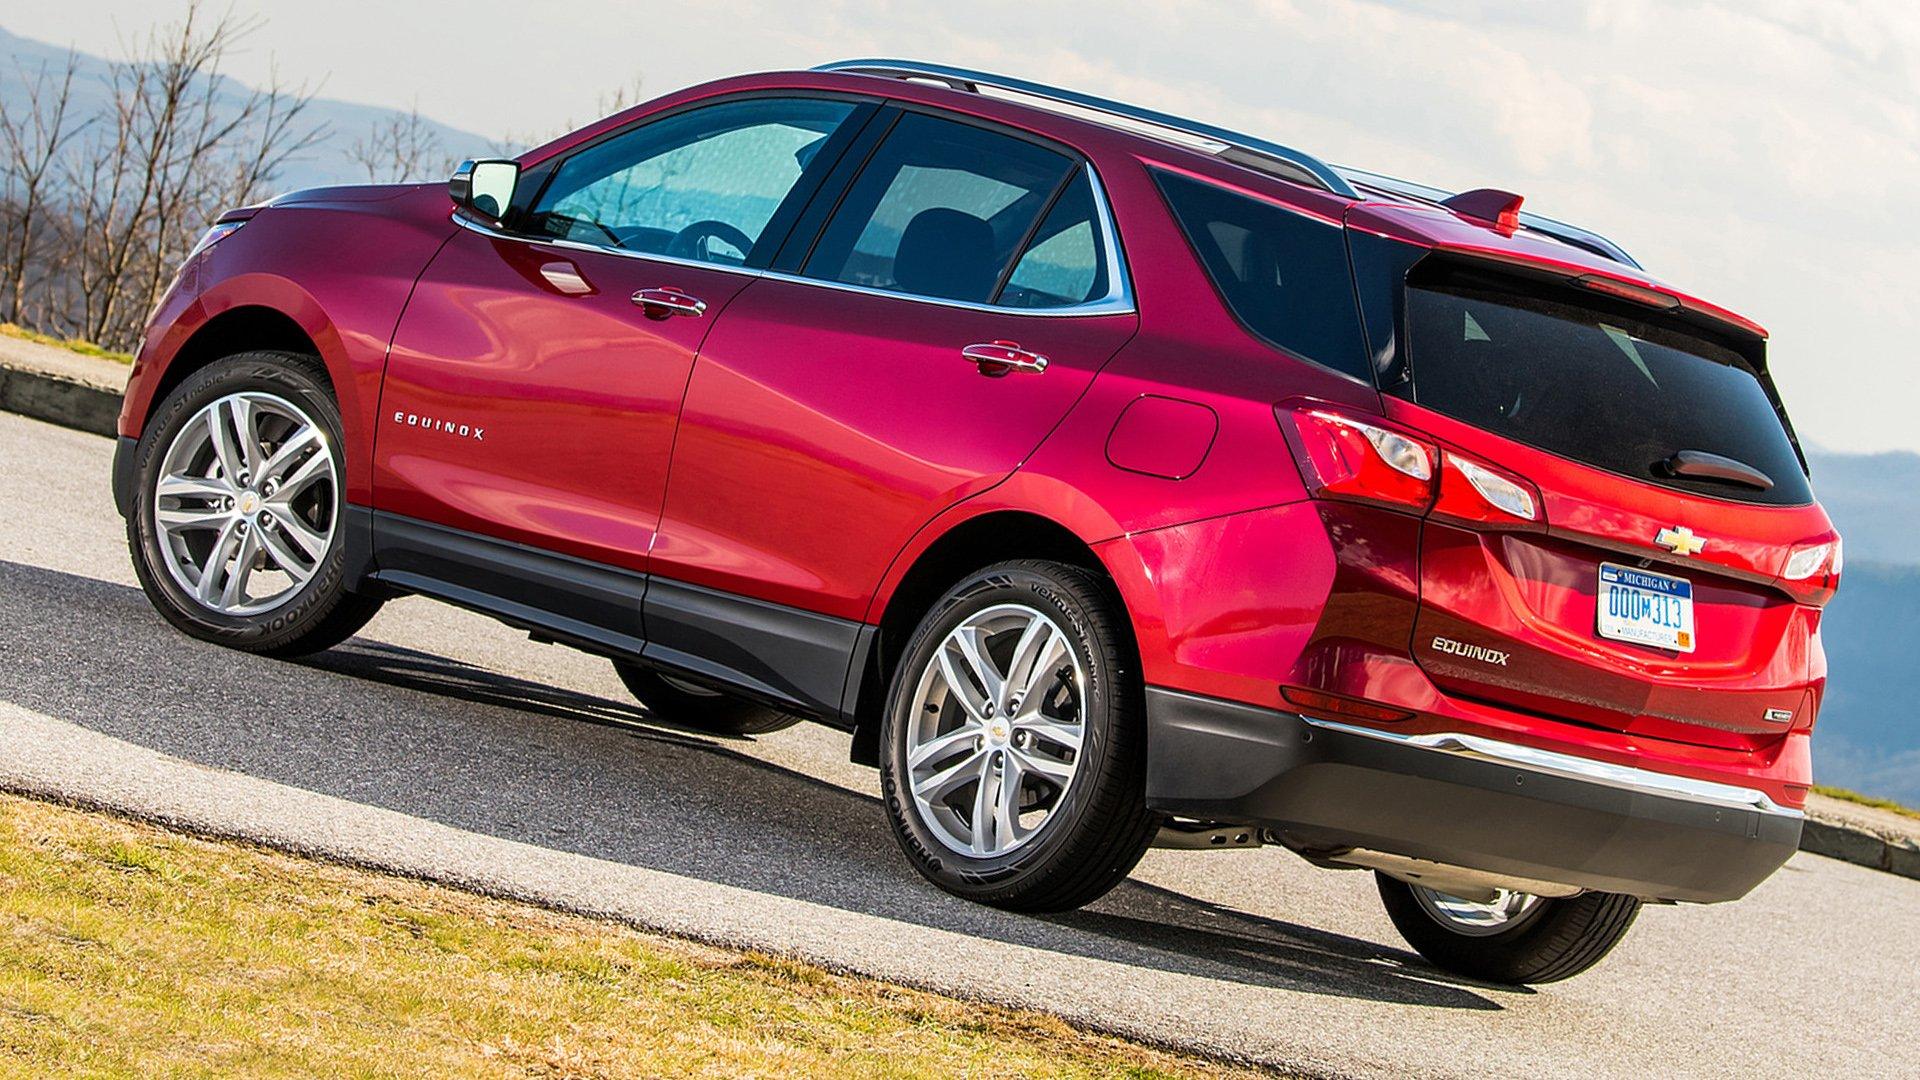 Chevrolet Equinox Images HD